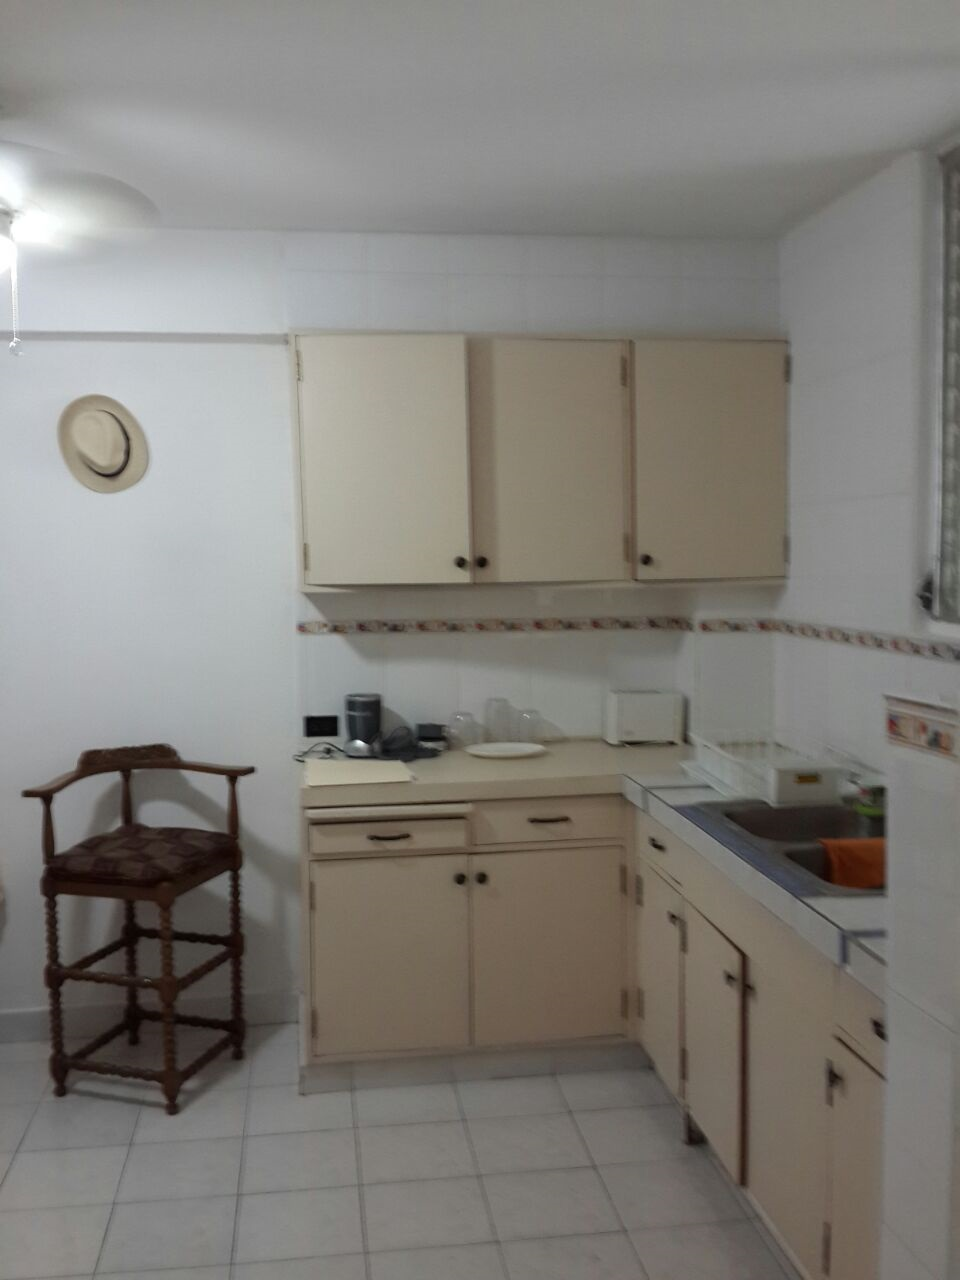 Hotels El Cangrejo walking distance from Spanish Panama For accommodation options we have efficiency suites though availability is very limited. Cost is $775.00 for 4 weeks and includes A/C , WIFI and electricity. For 2 weeks it is $500.00.